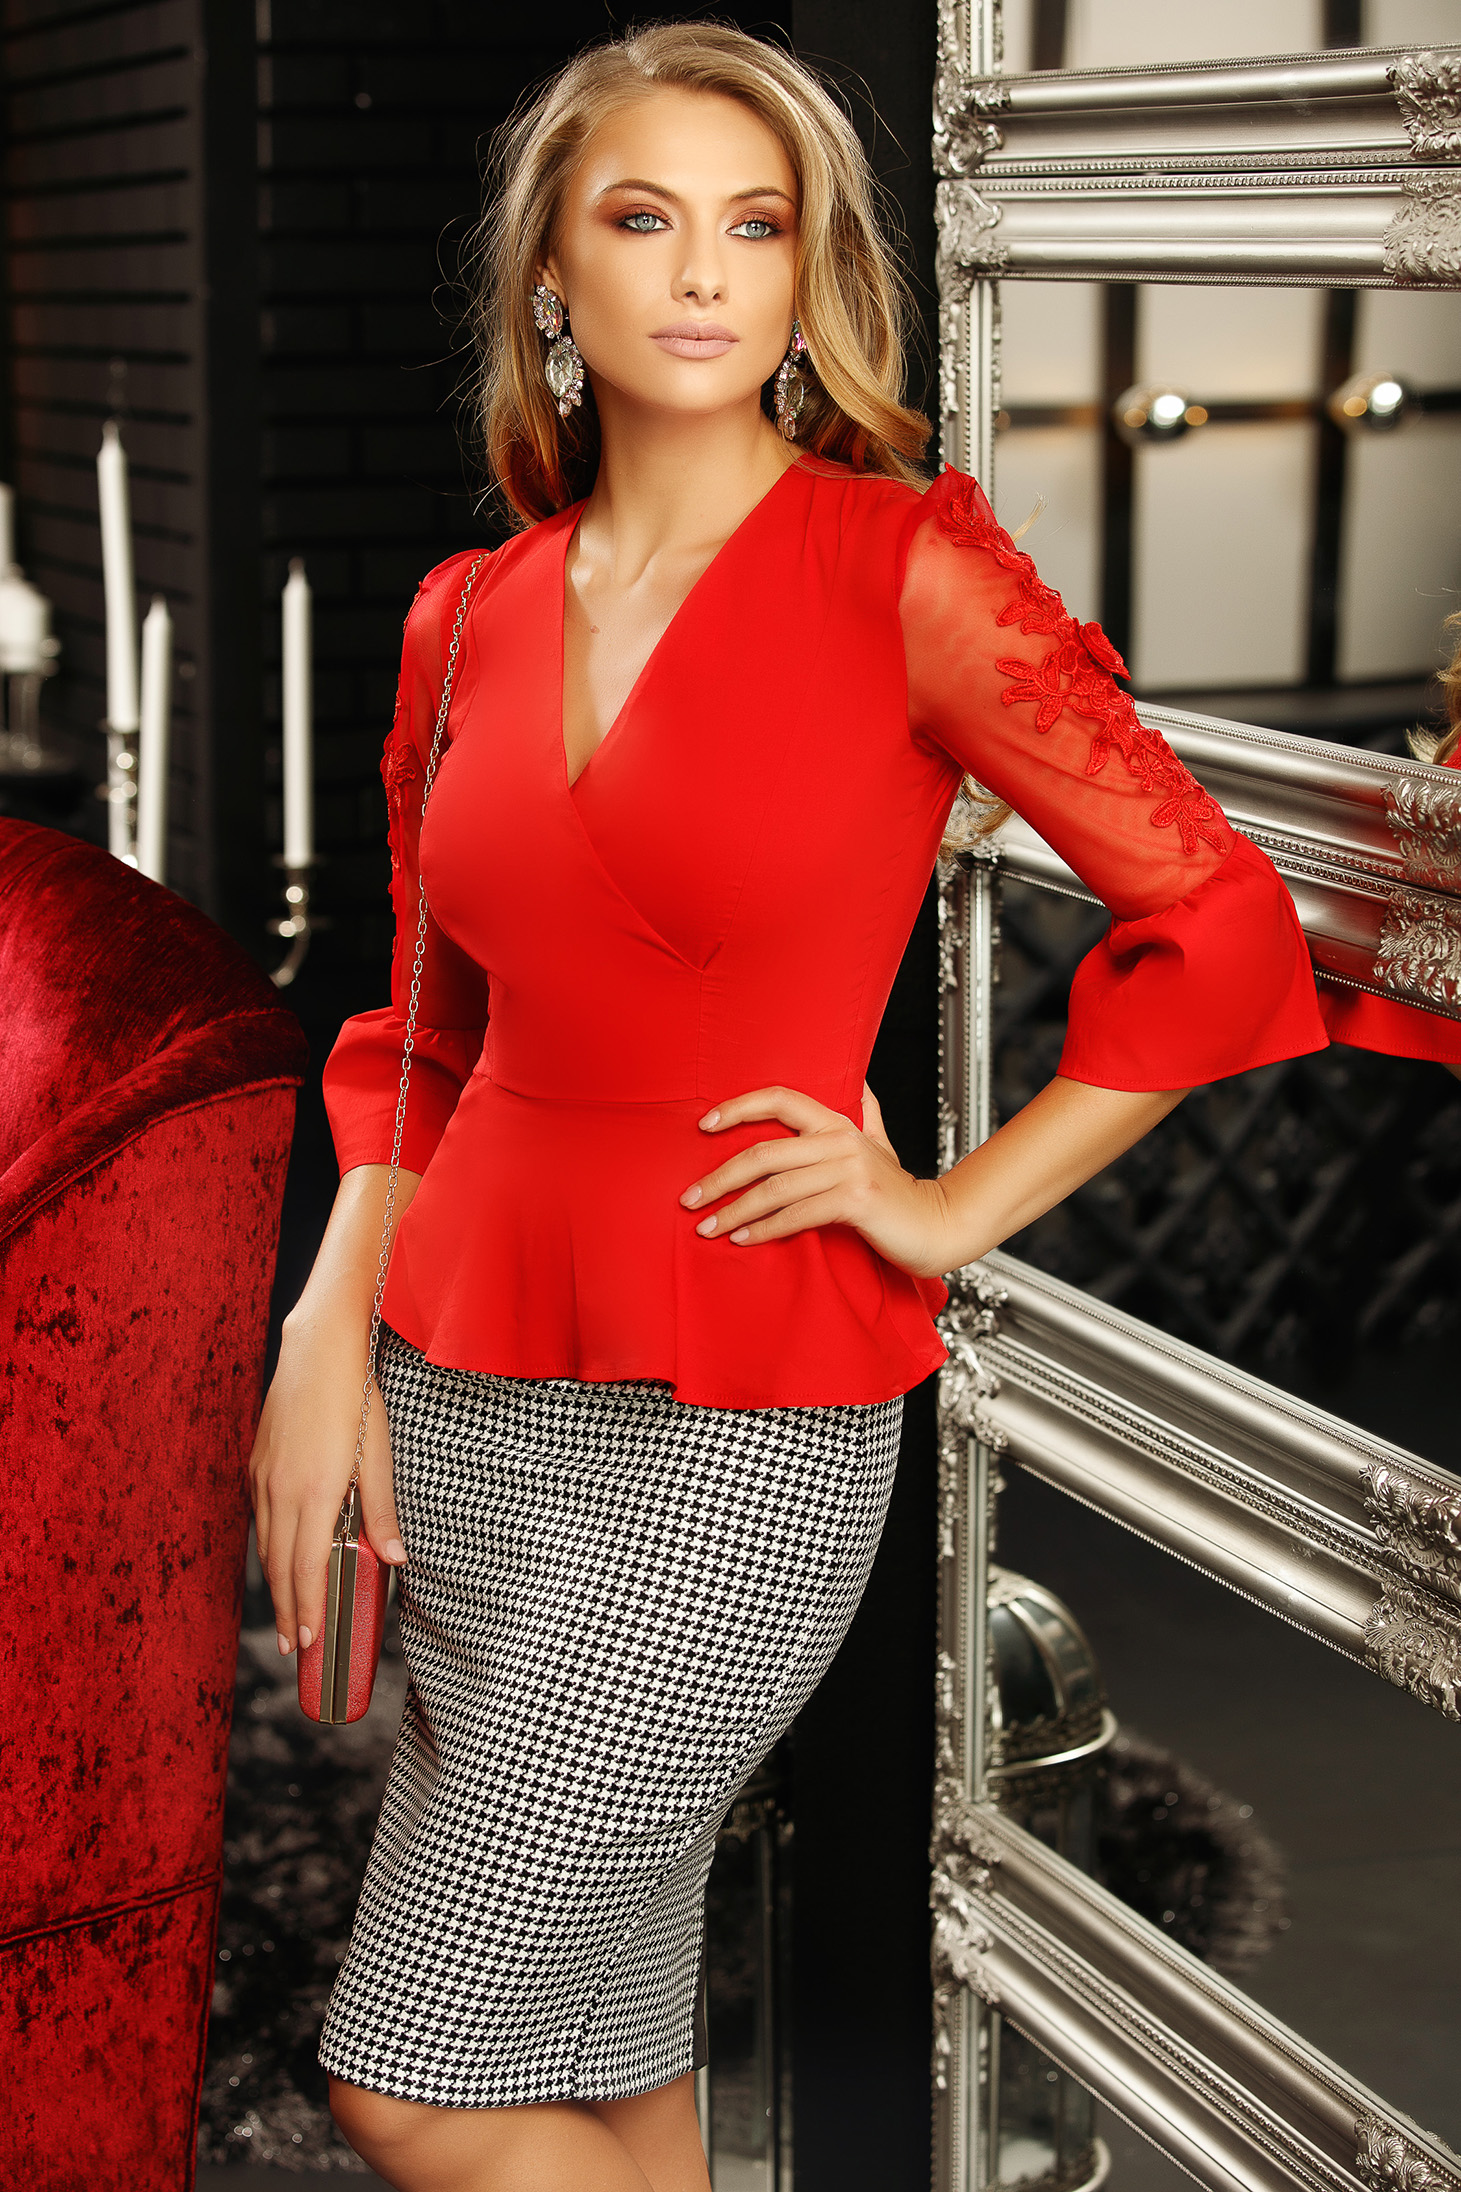 Women`s shirt red with net accessory with lace details with v-neckline peplum tented 3/4 sleeve